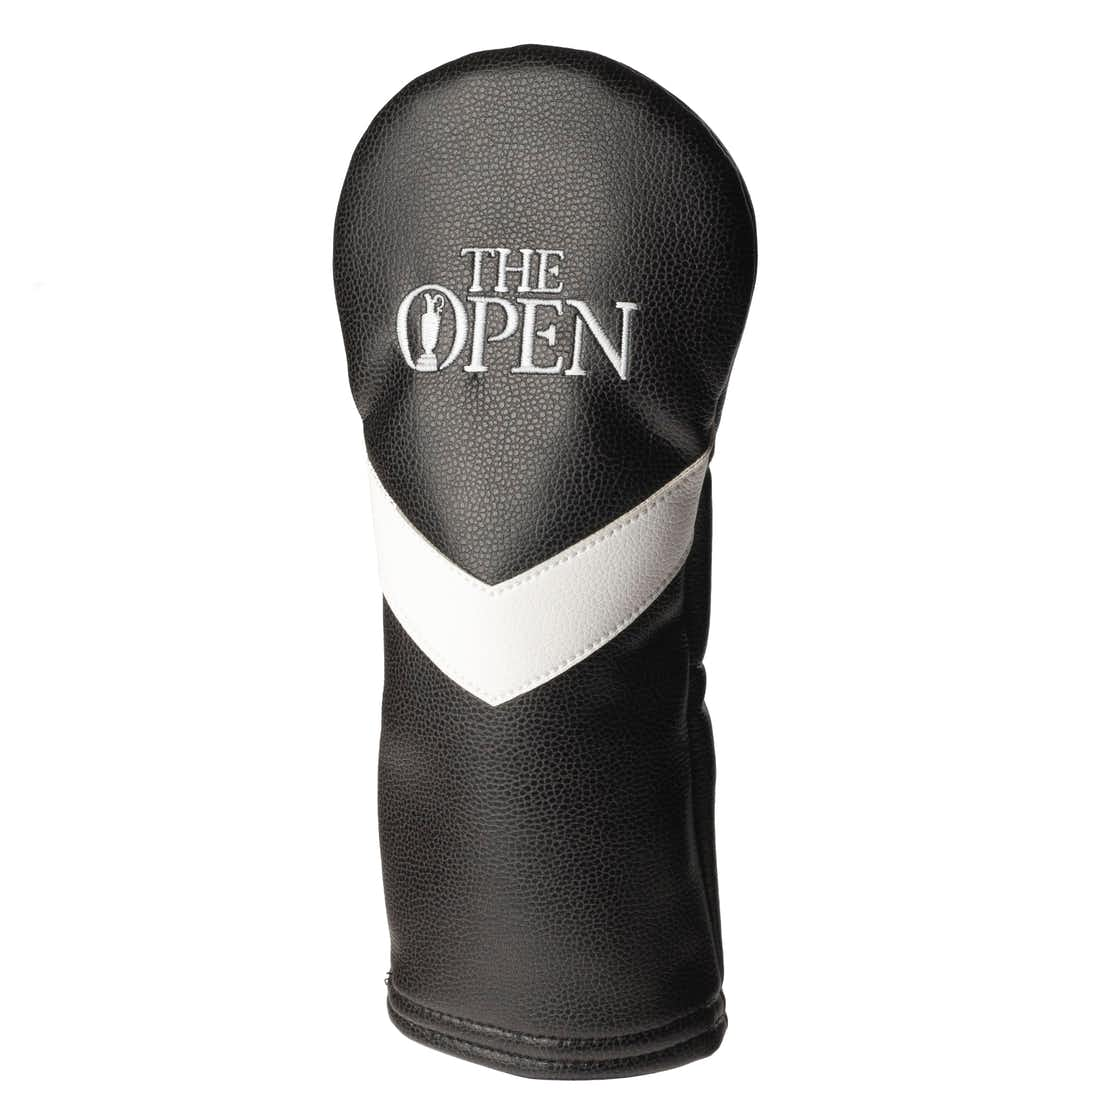 The Open Utility Headcover - Black